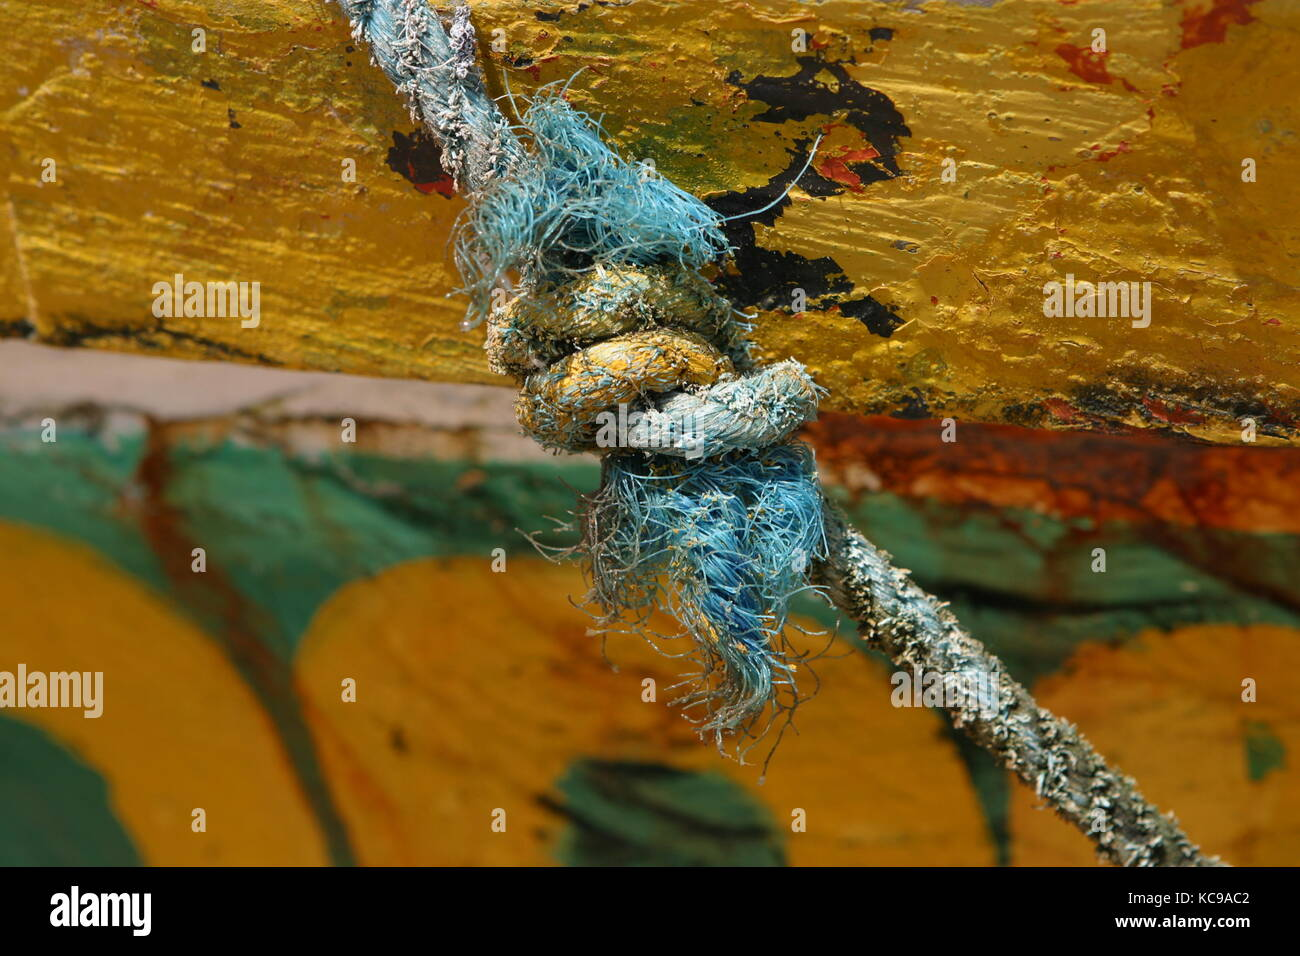 Boot mit Seil und Knoten -Boat with rope and node - Stock Image